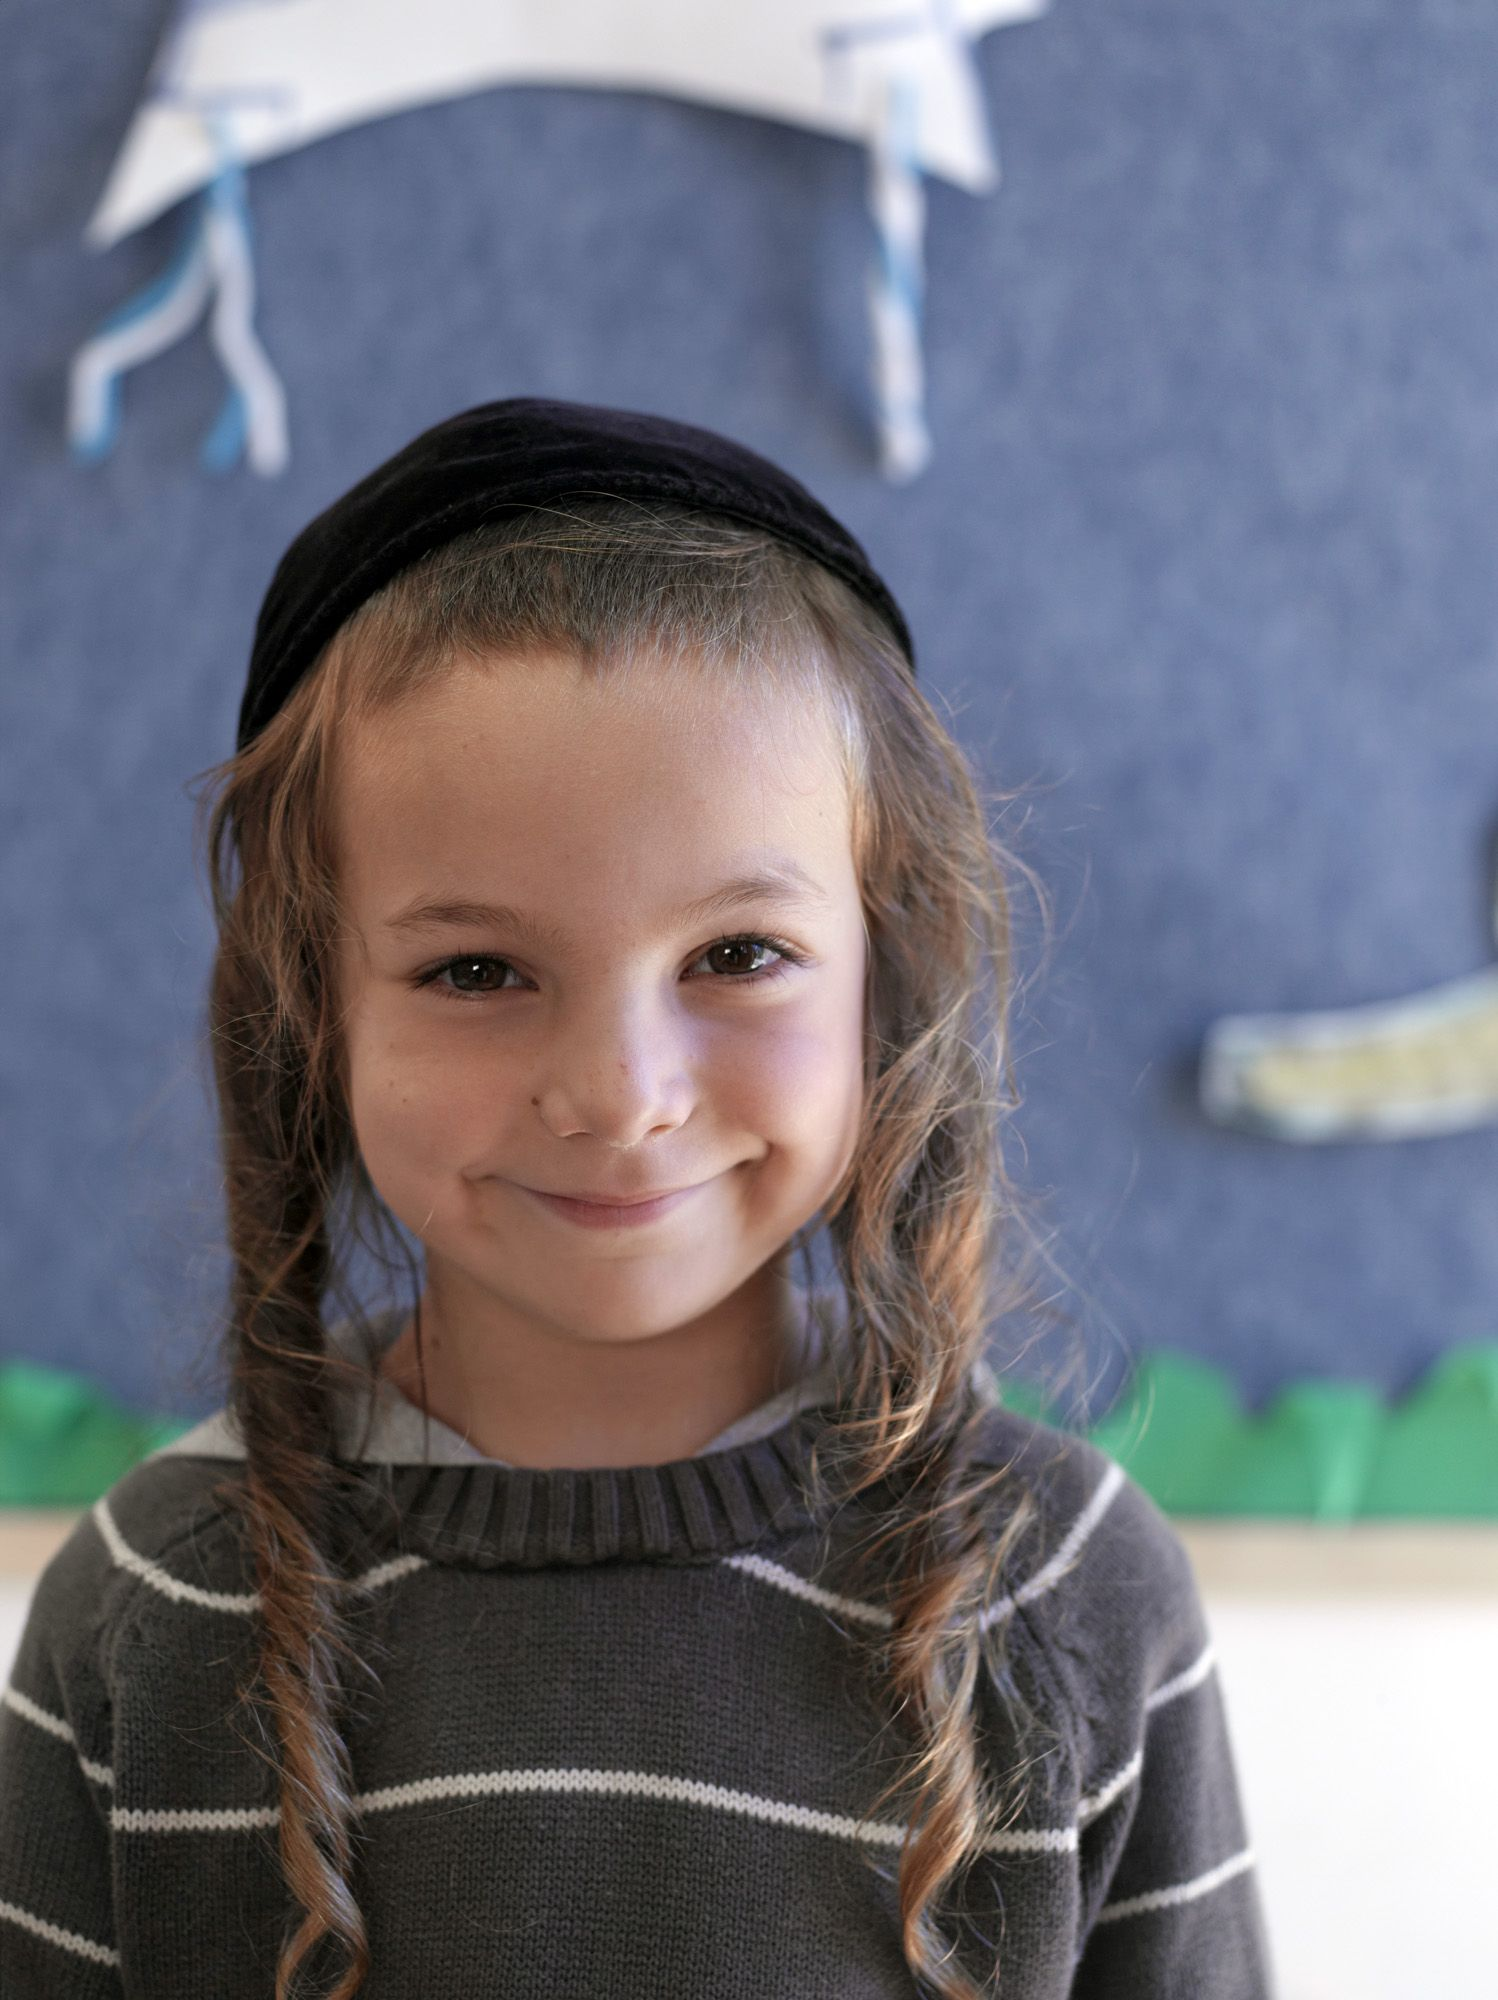 Israel Children Are So Precious No Matter Where They Are From Or Who